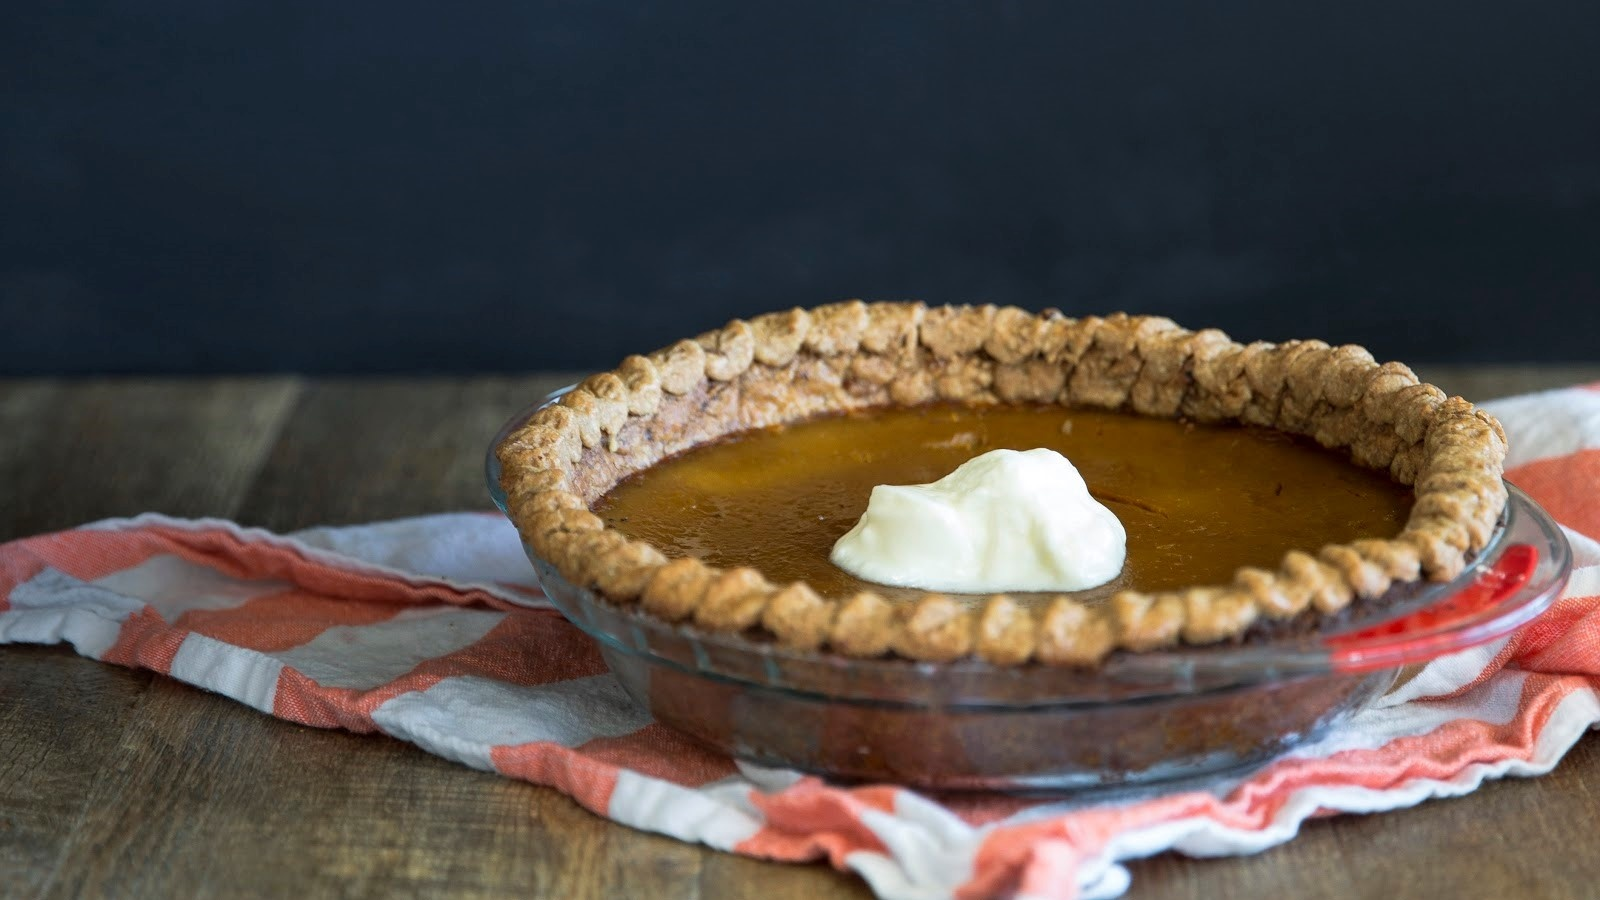 Pumpkin Pie with Homemade Gluten-Free Pastry